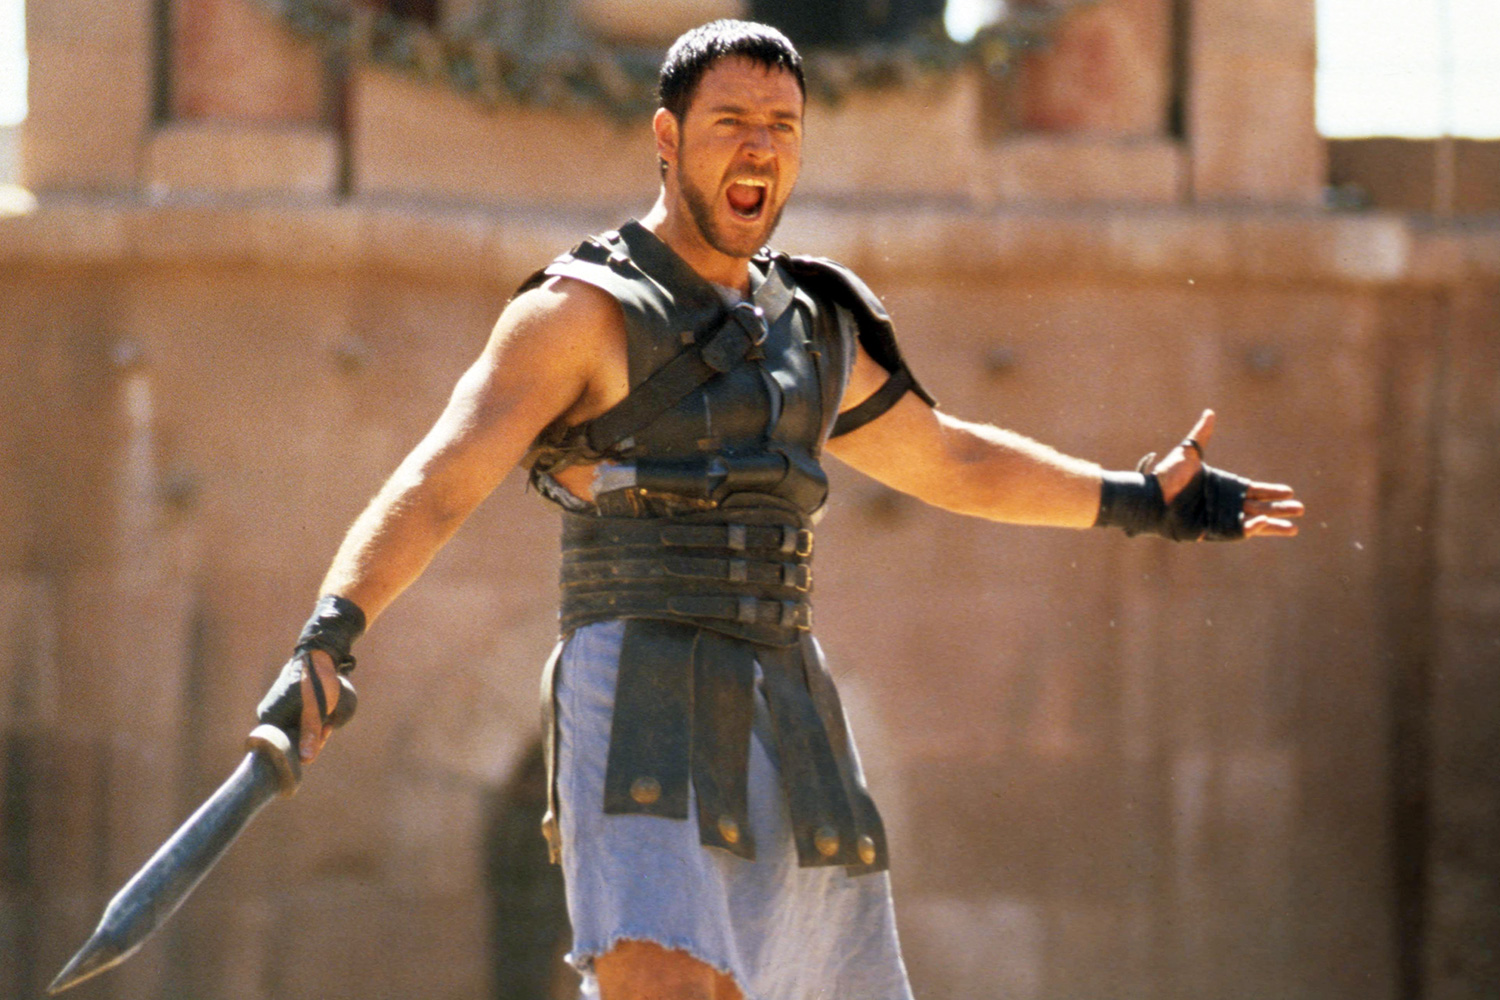 Russell Crowe Gladiator - 2000